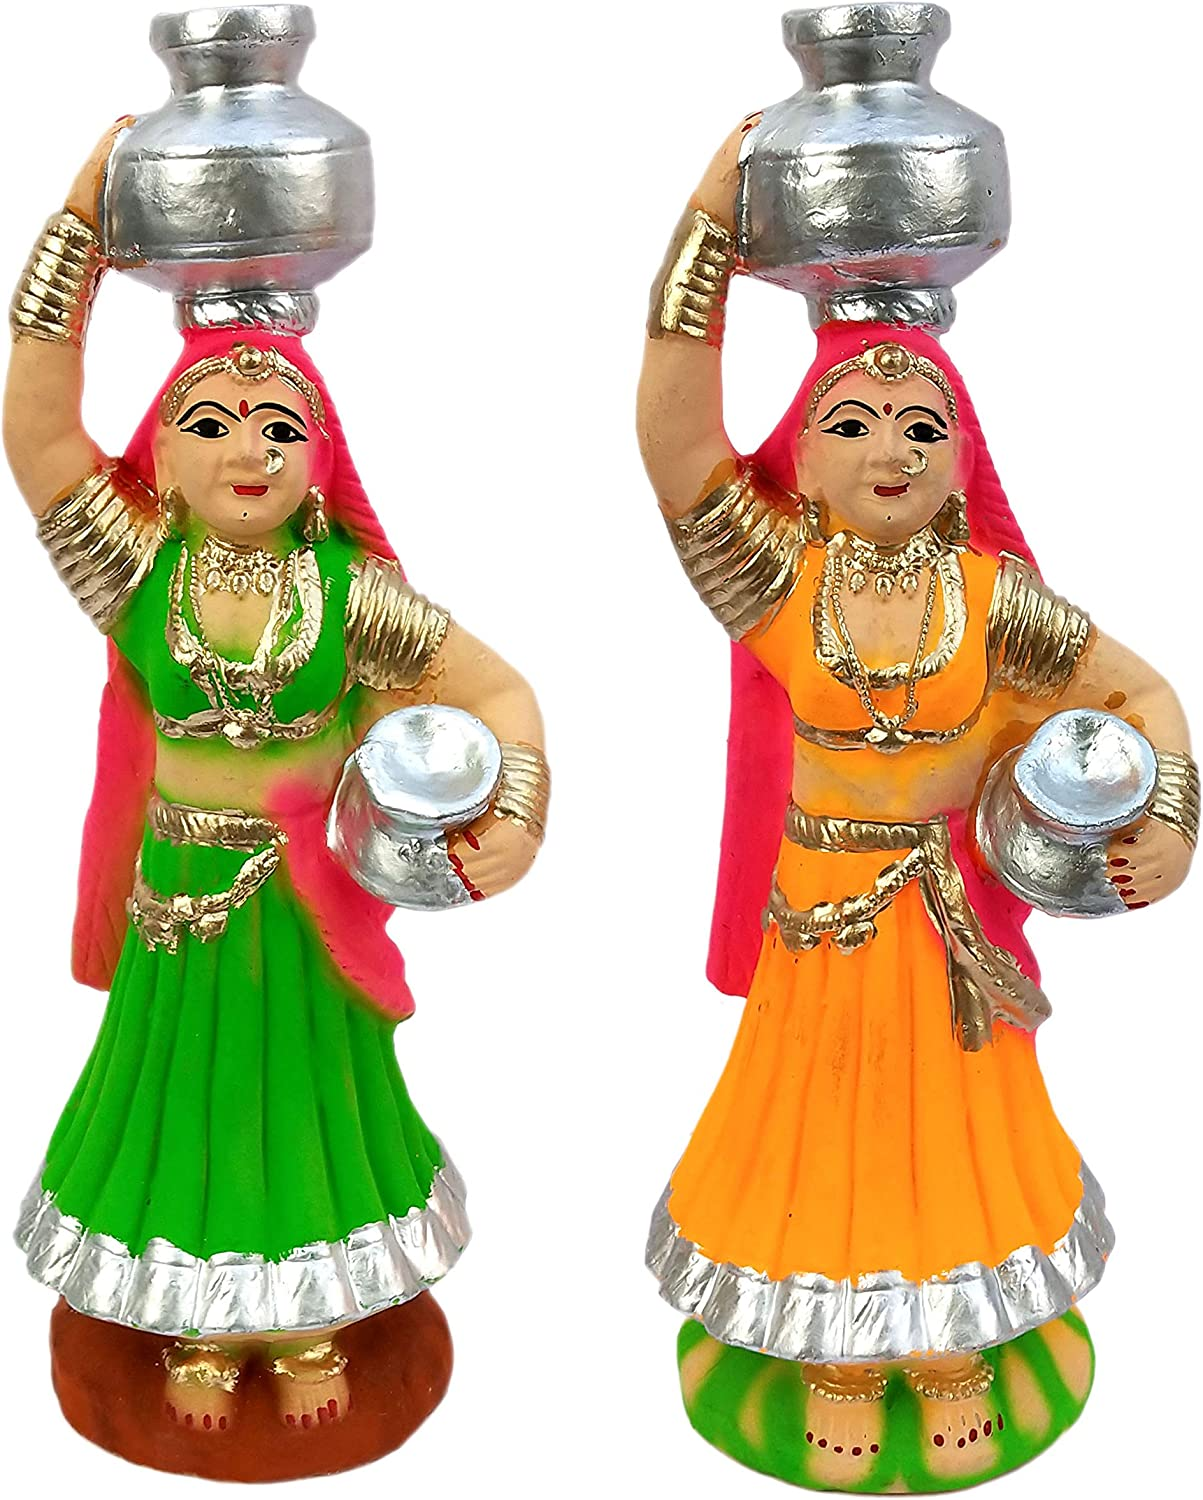 Laxman Art POP Made Hand Painted Indian Rajasthani Women Statue Figurines for Home Decor (1 Pair)